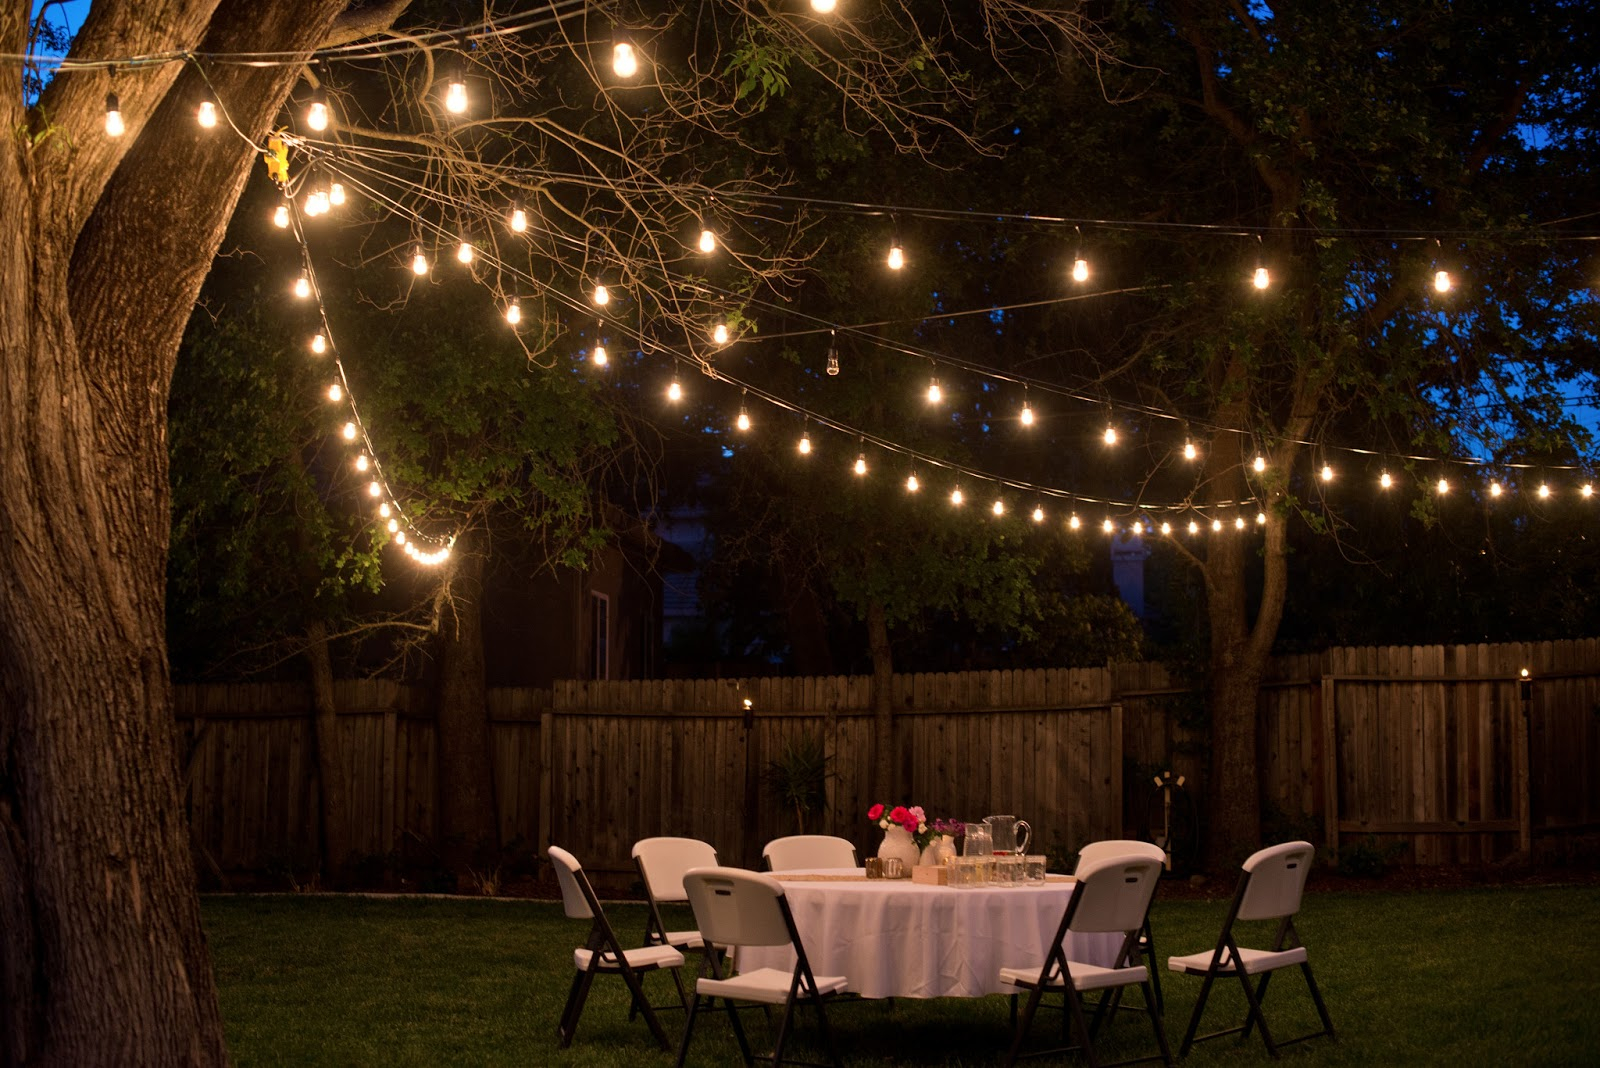 Mesmerizing Backyard Party Lighting Ideas 82 Best Patio Lights for Lighting Ideas For Backyard Party